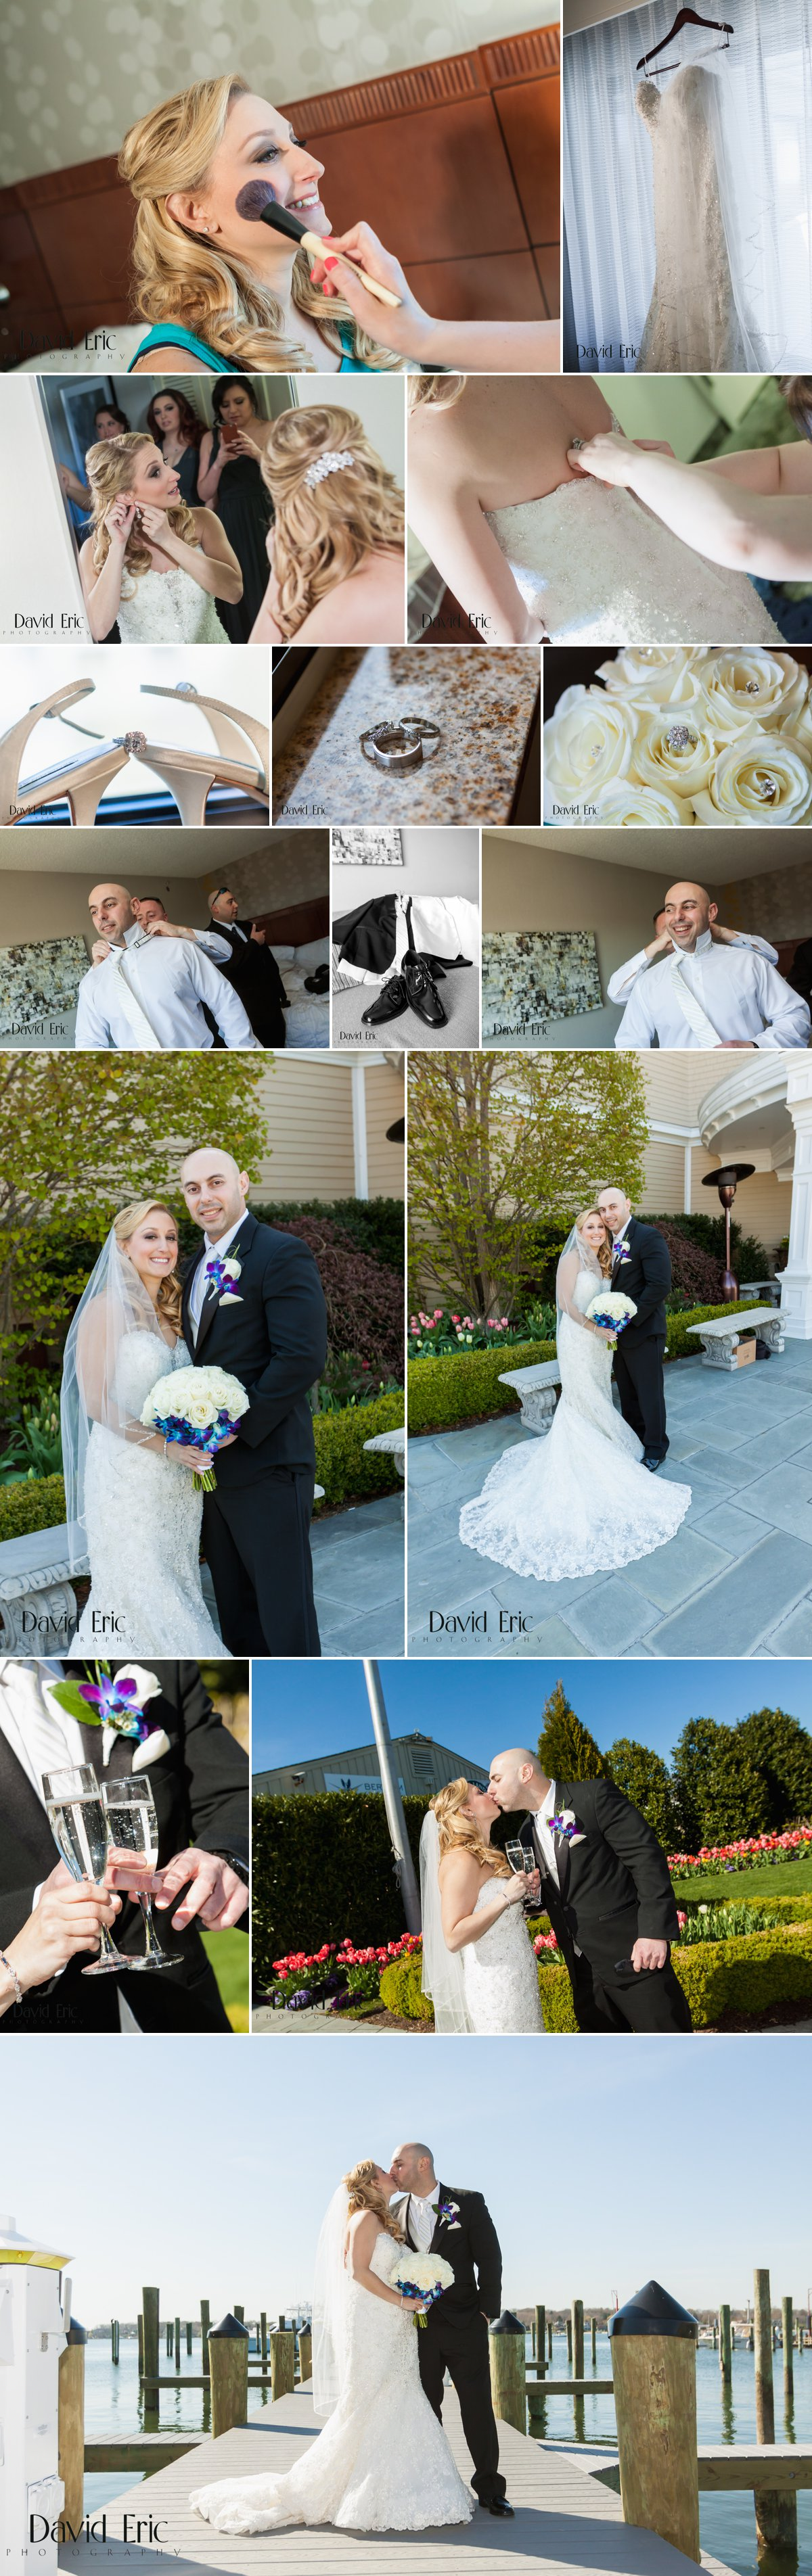 Clarks Landing Yacht Club Point Pleasant New Jersey Pelta Wedding - David Eric Photography 1